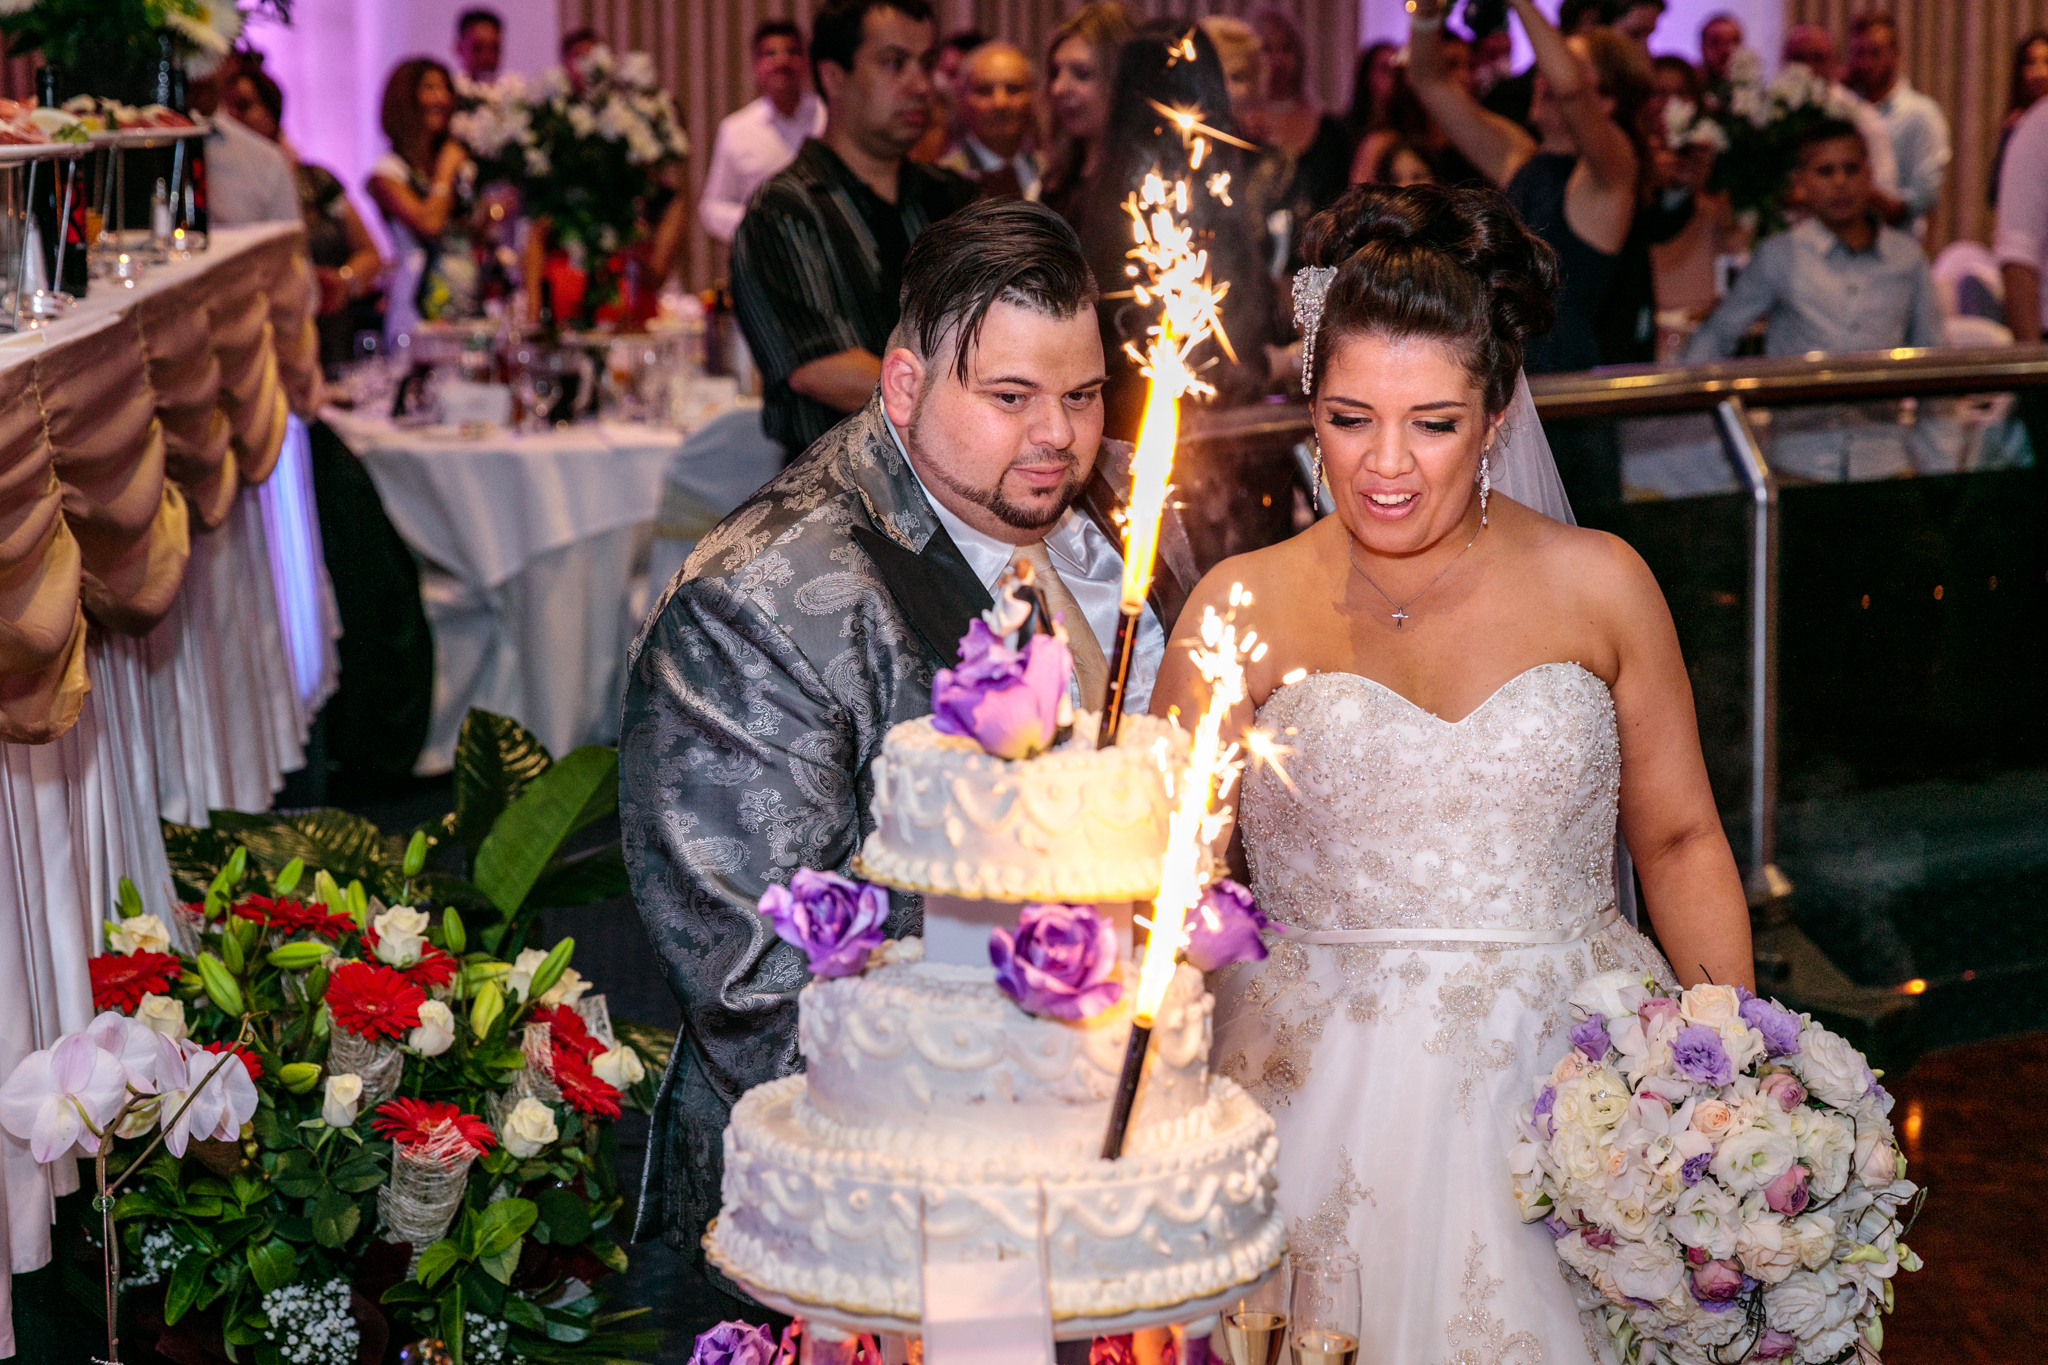 Cutting the Cake with Fireworks!